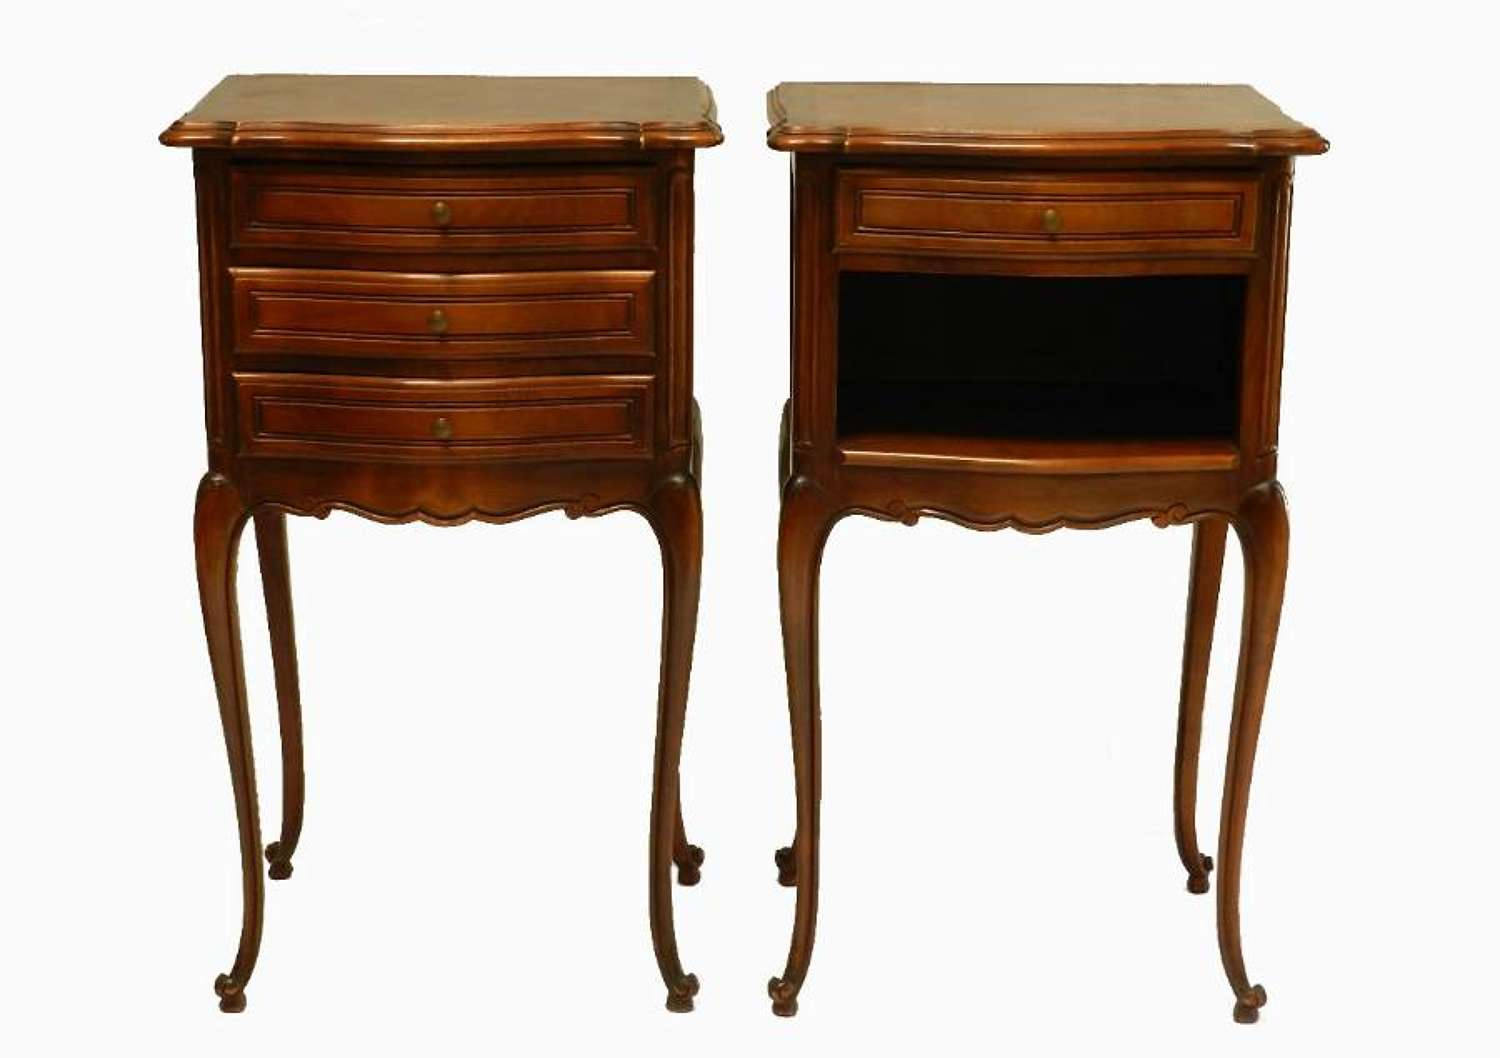 French Pair of Bedside Tables Louis rev Cherry Cabinet Nightstands